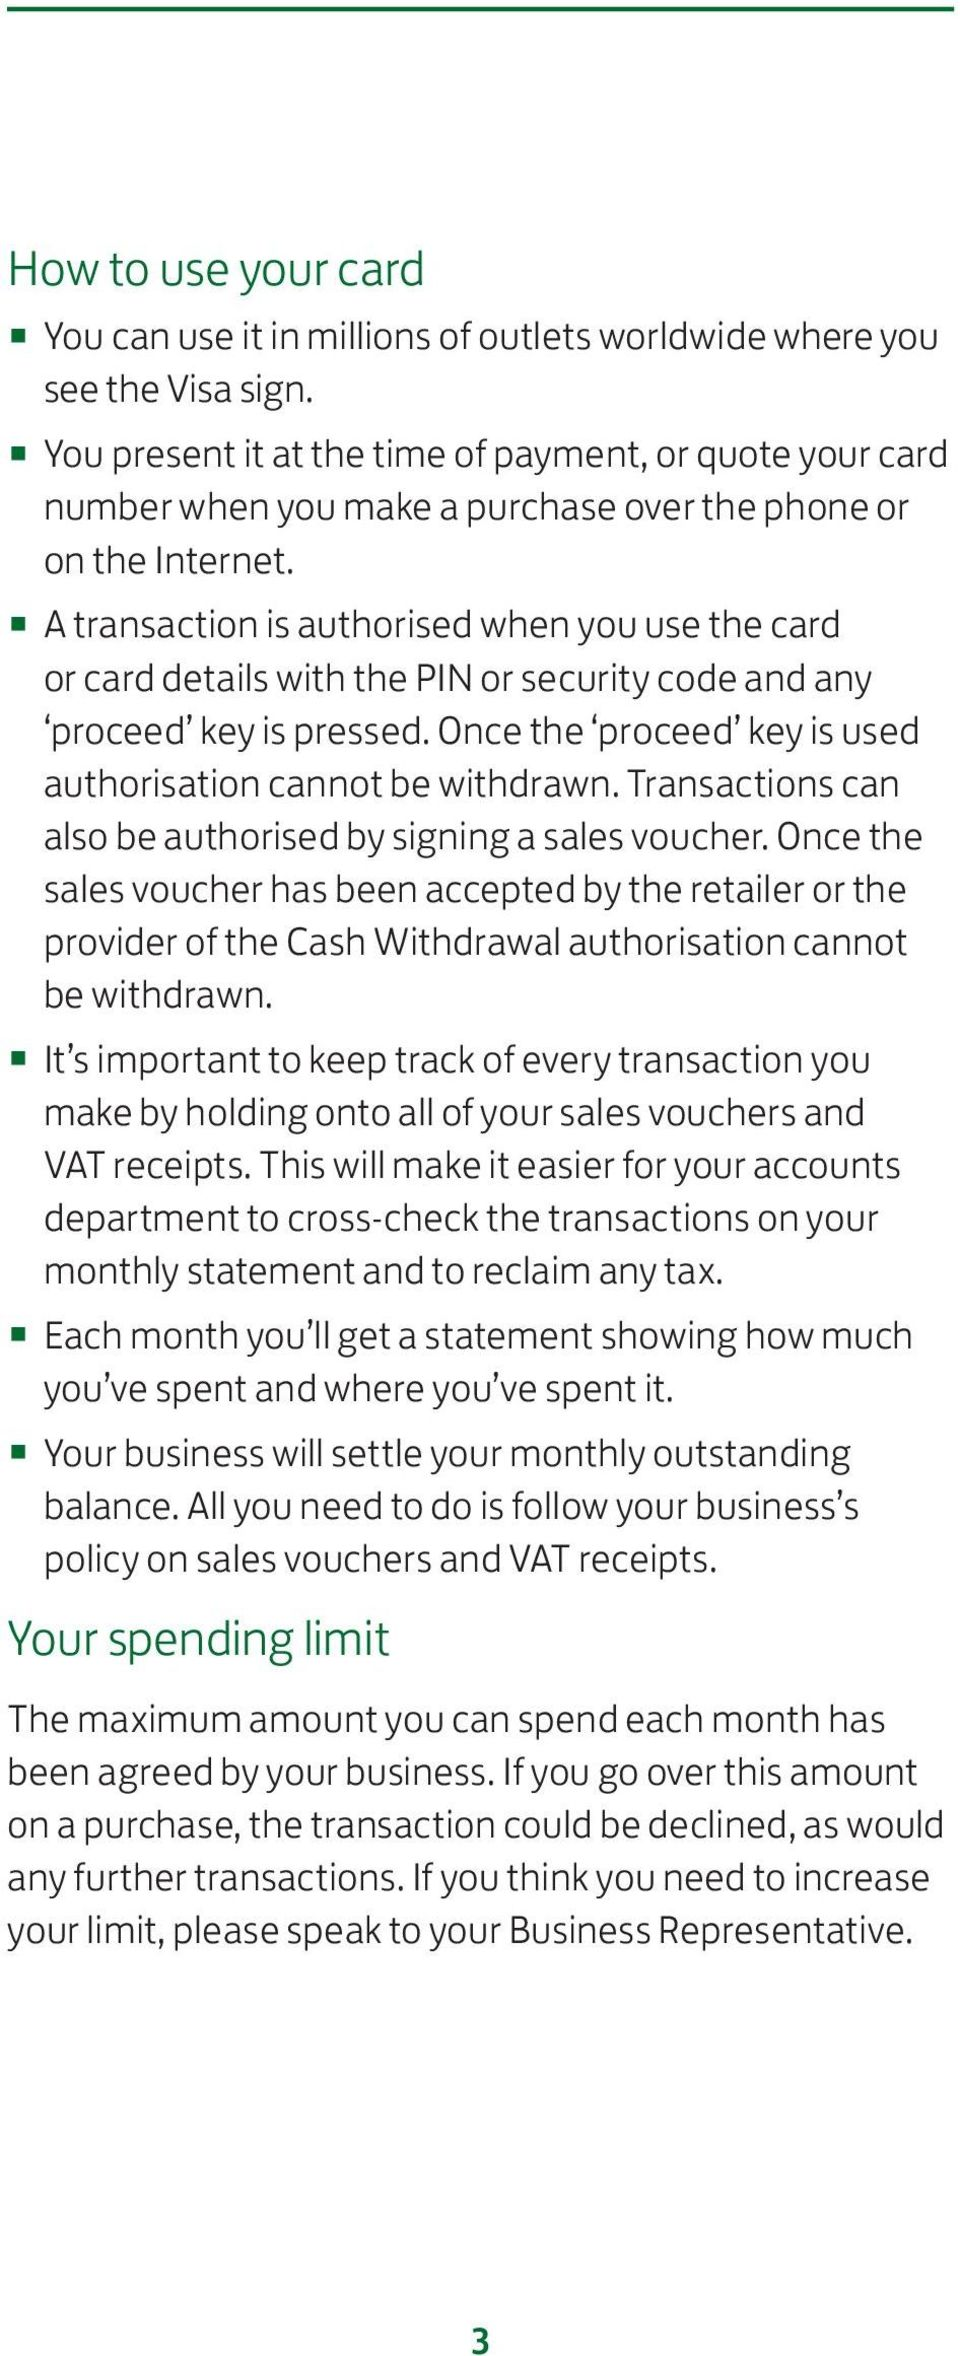 A transaction is authorised when you use the card or card details with the PIN or security code and any proceed key is pressed. Once the proceed key is used authorisation cannot be withdrawn.